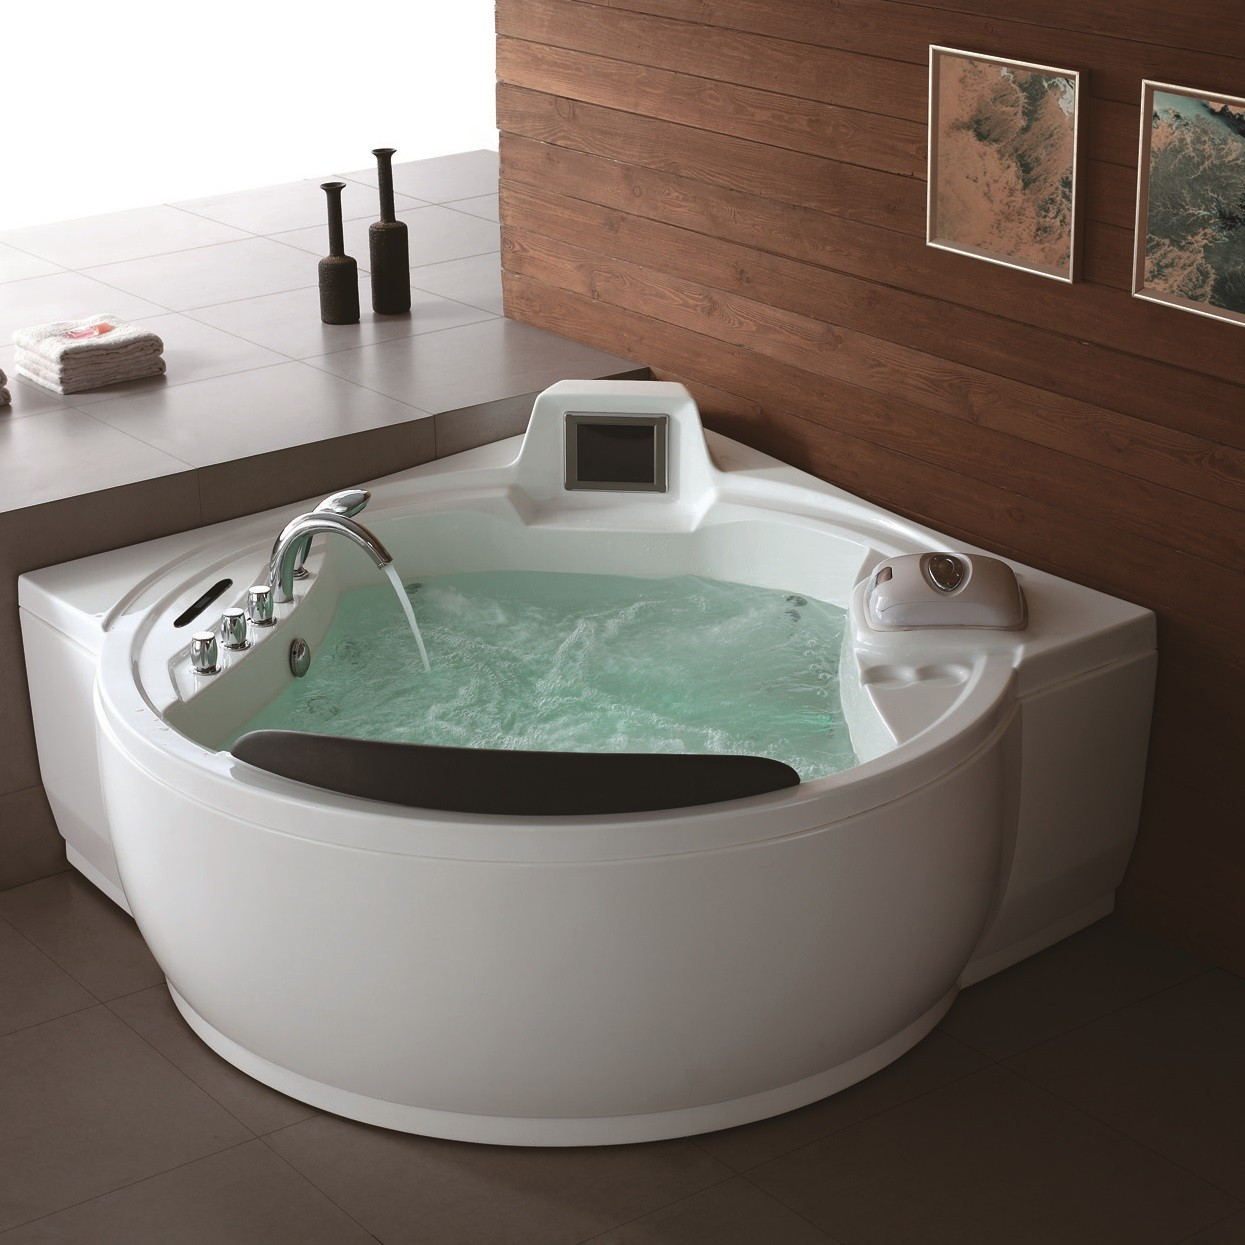 Bathroom Jacuzzi Tub freeport whirlpool tub